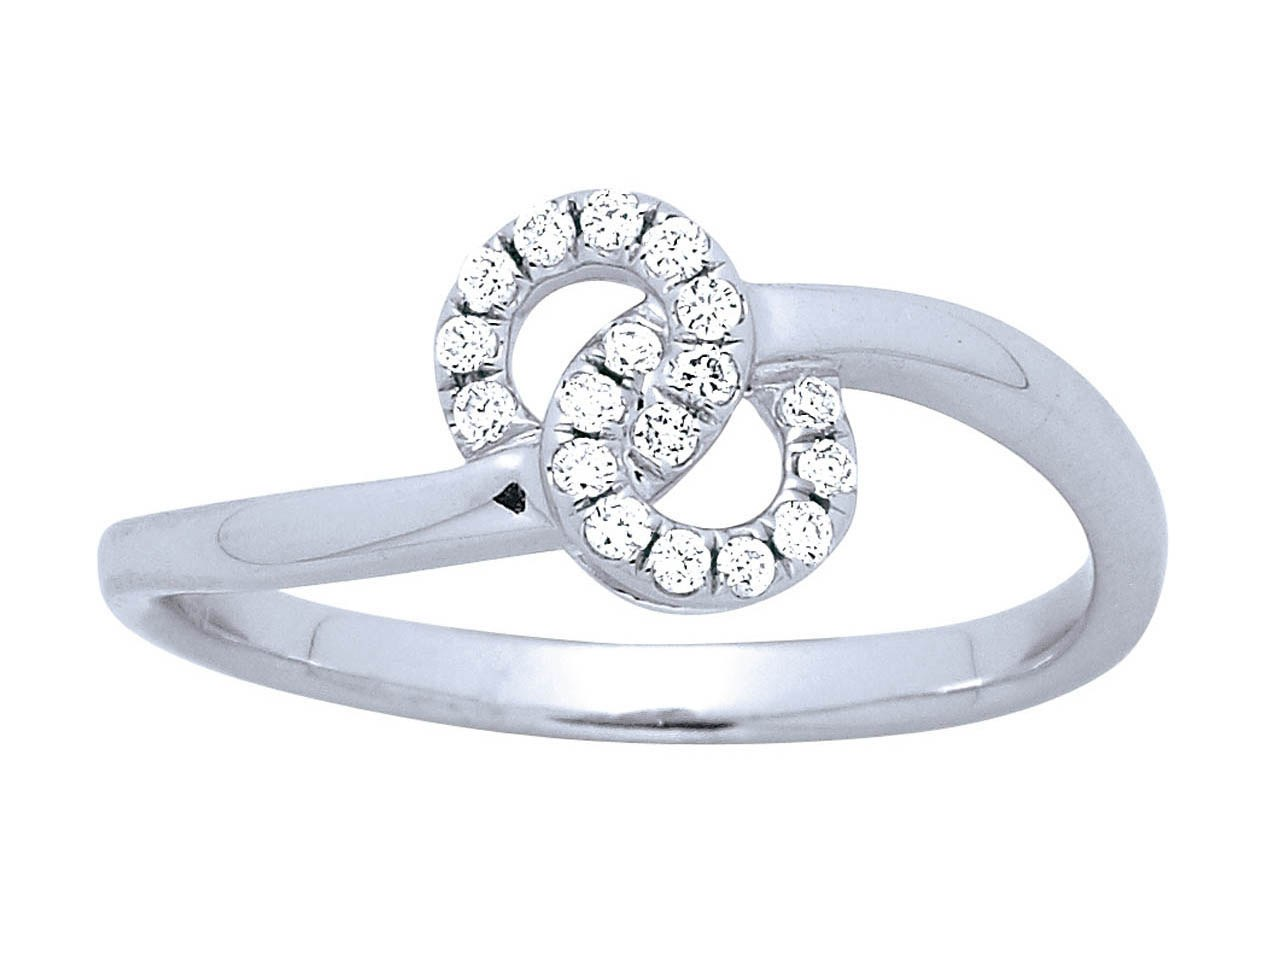 Bague forme 8, Or gris, diamants 0,10 ct